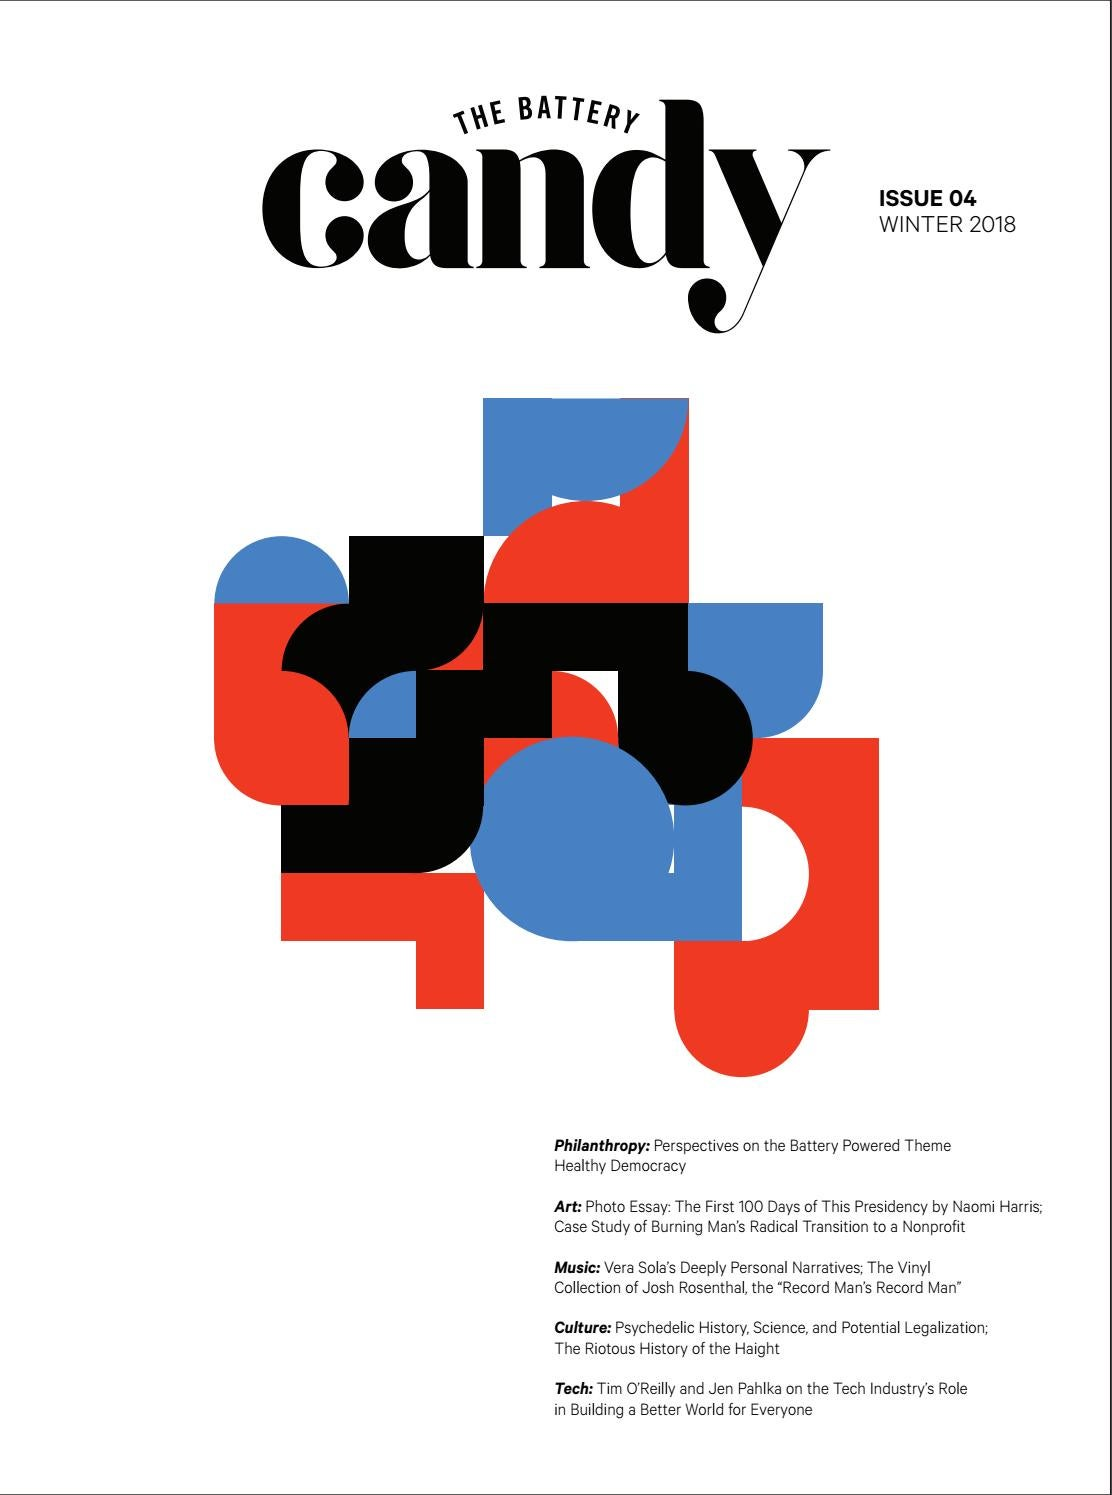 The Battery Candy Issue 04 By The Battery Candy   Issuu